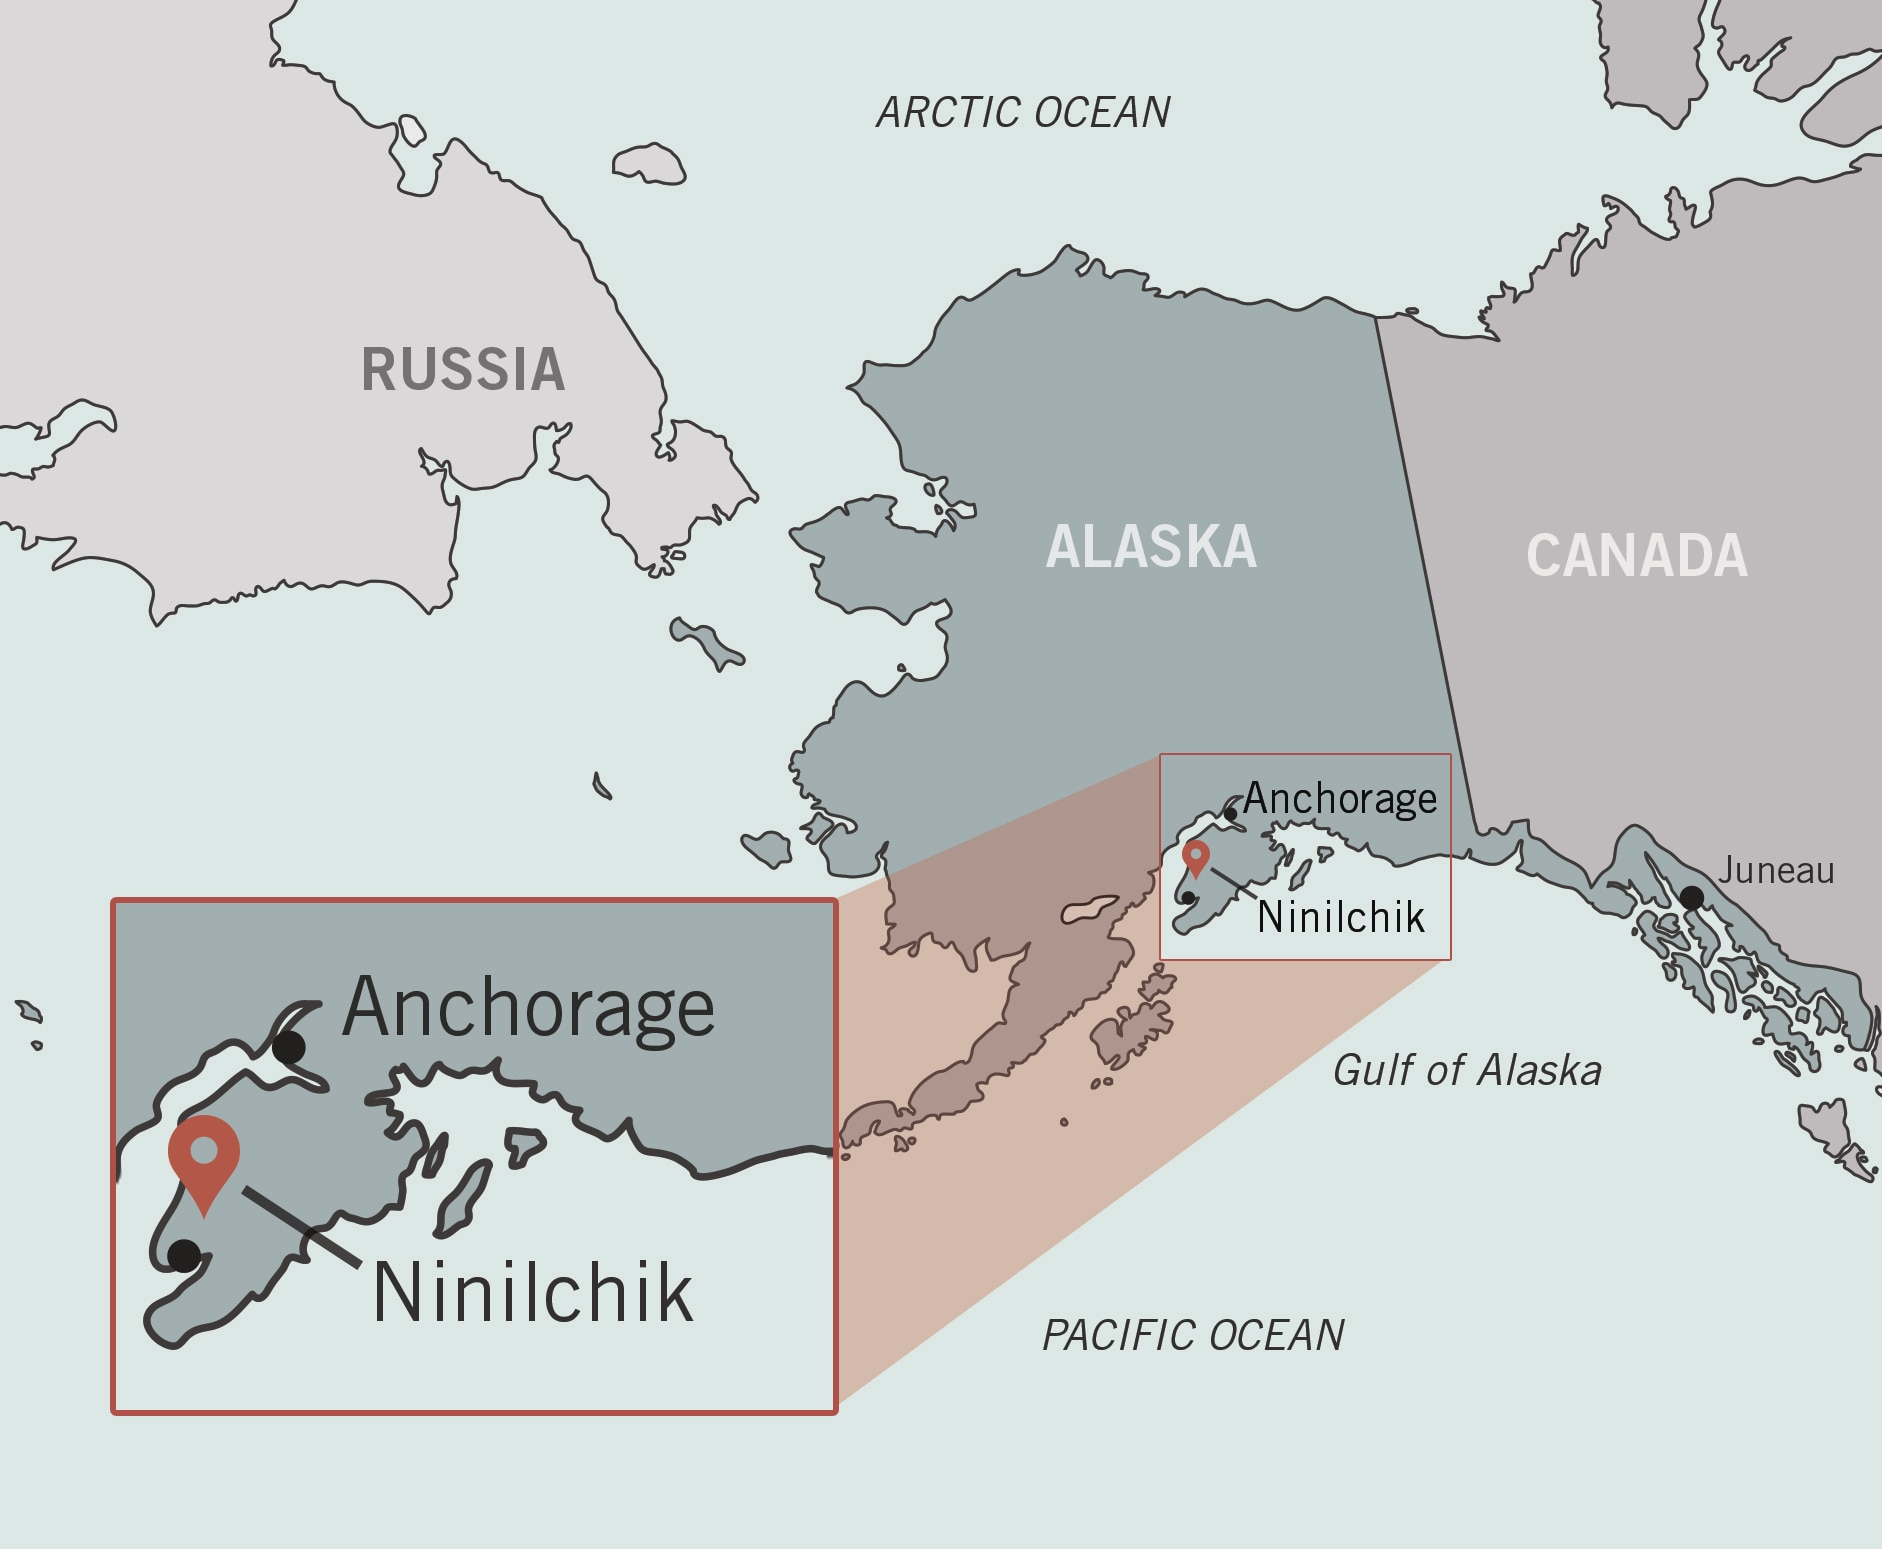 Map of Alaska with inset highlighting location of Ninilchik (State Dept./O. Mertz)